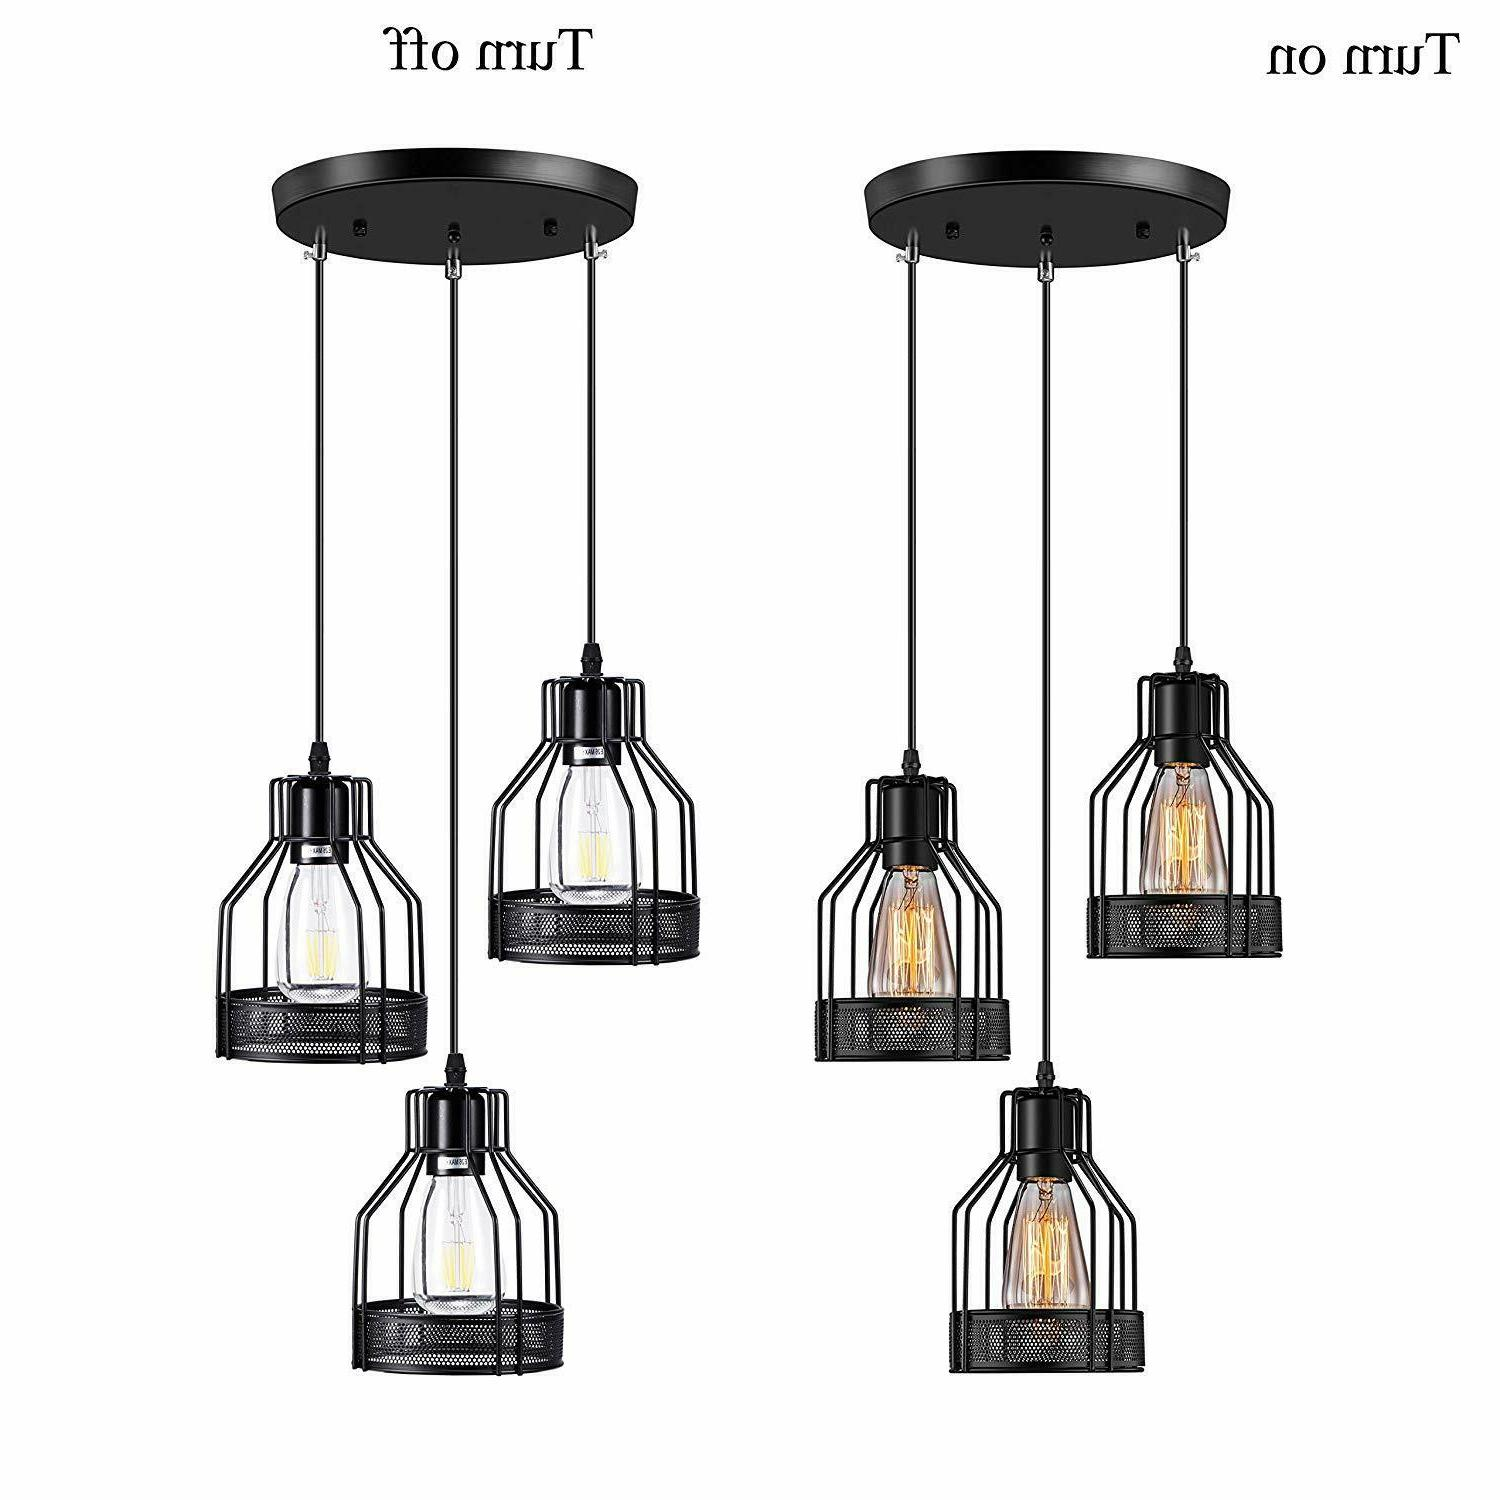 3 pendant light fixture industrial black hanging